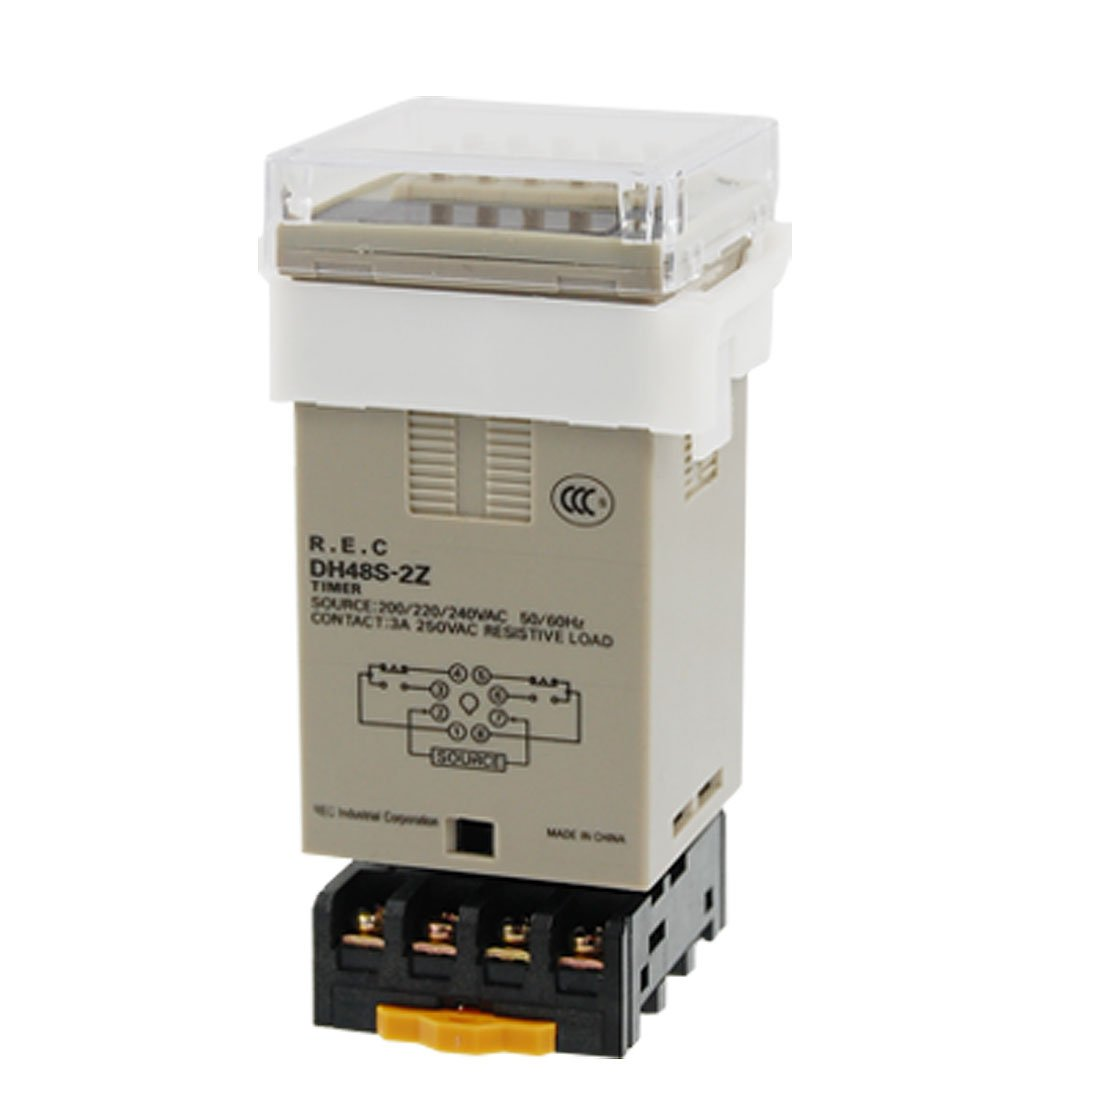 AC 220V Digital Timer Programmable Time Delay Relay